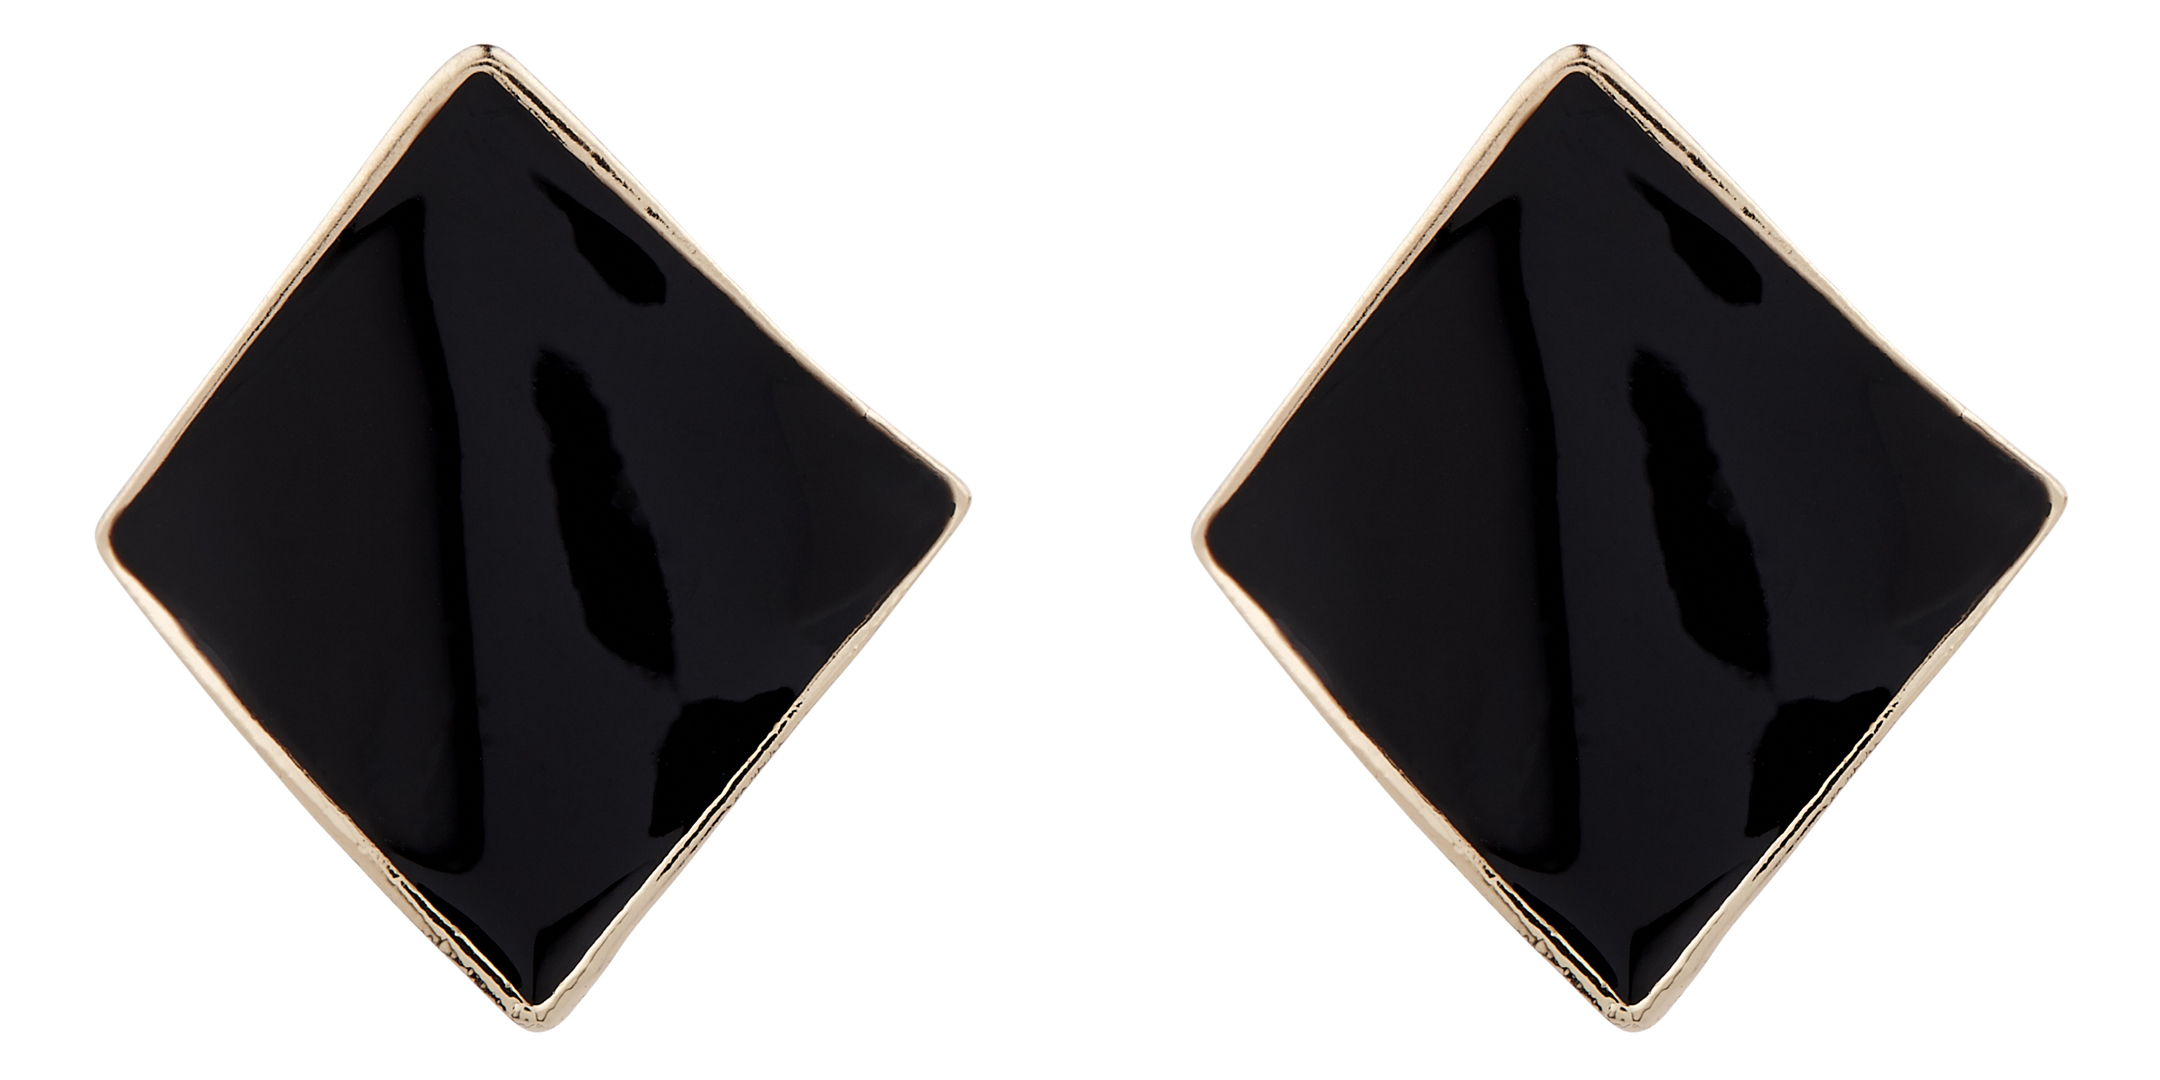 Clip On Earrings - Billie B - gold stud earring with black enamel